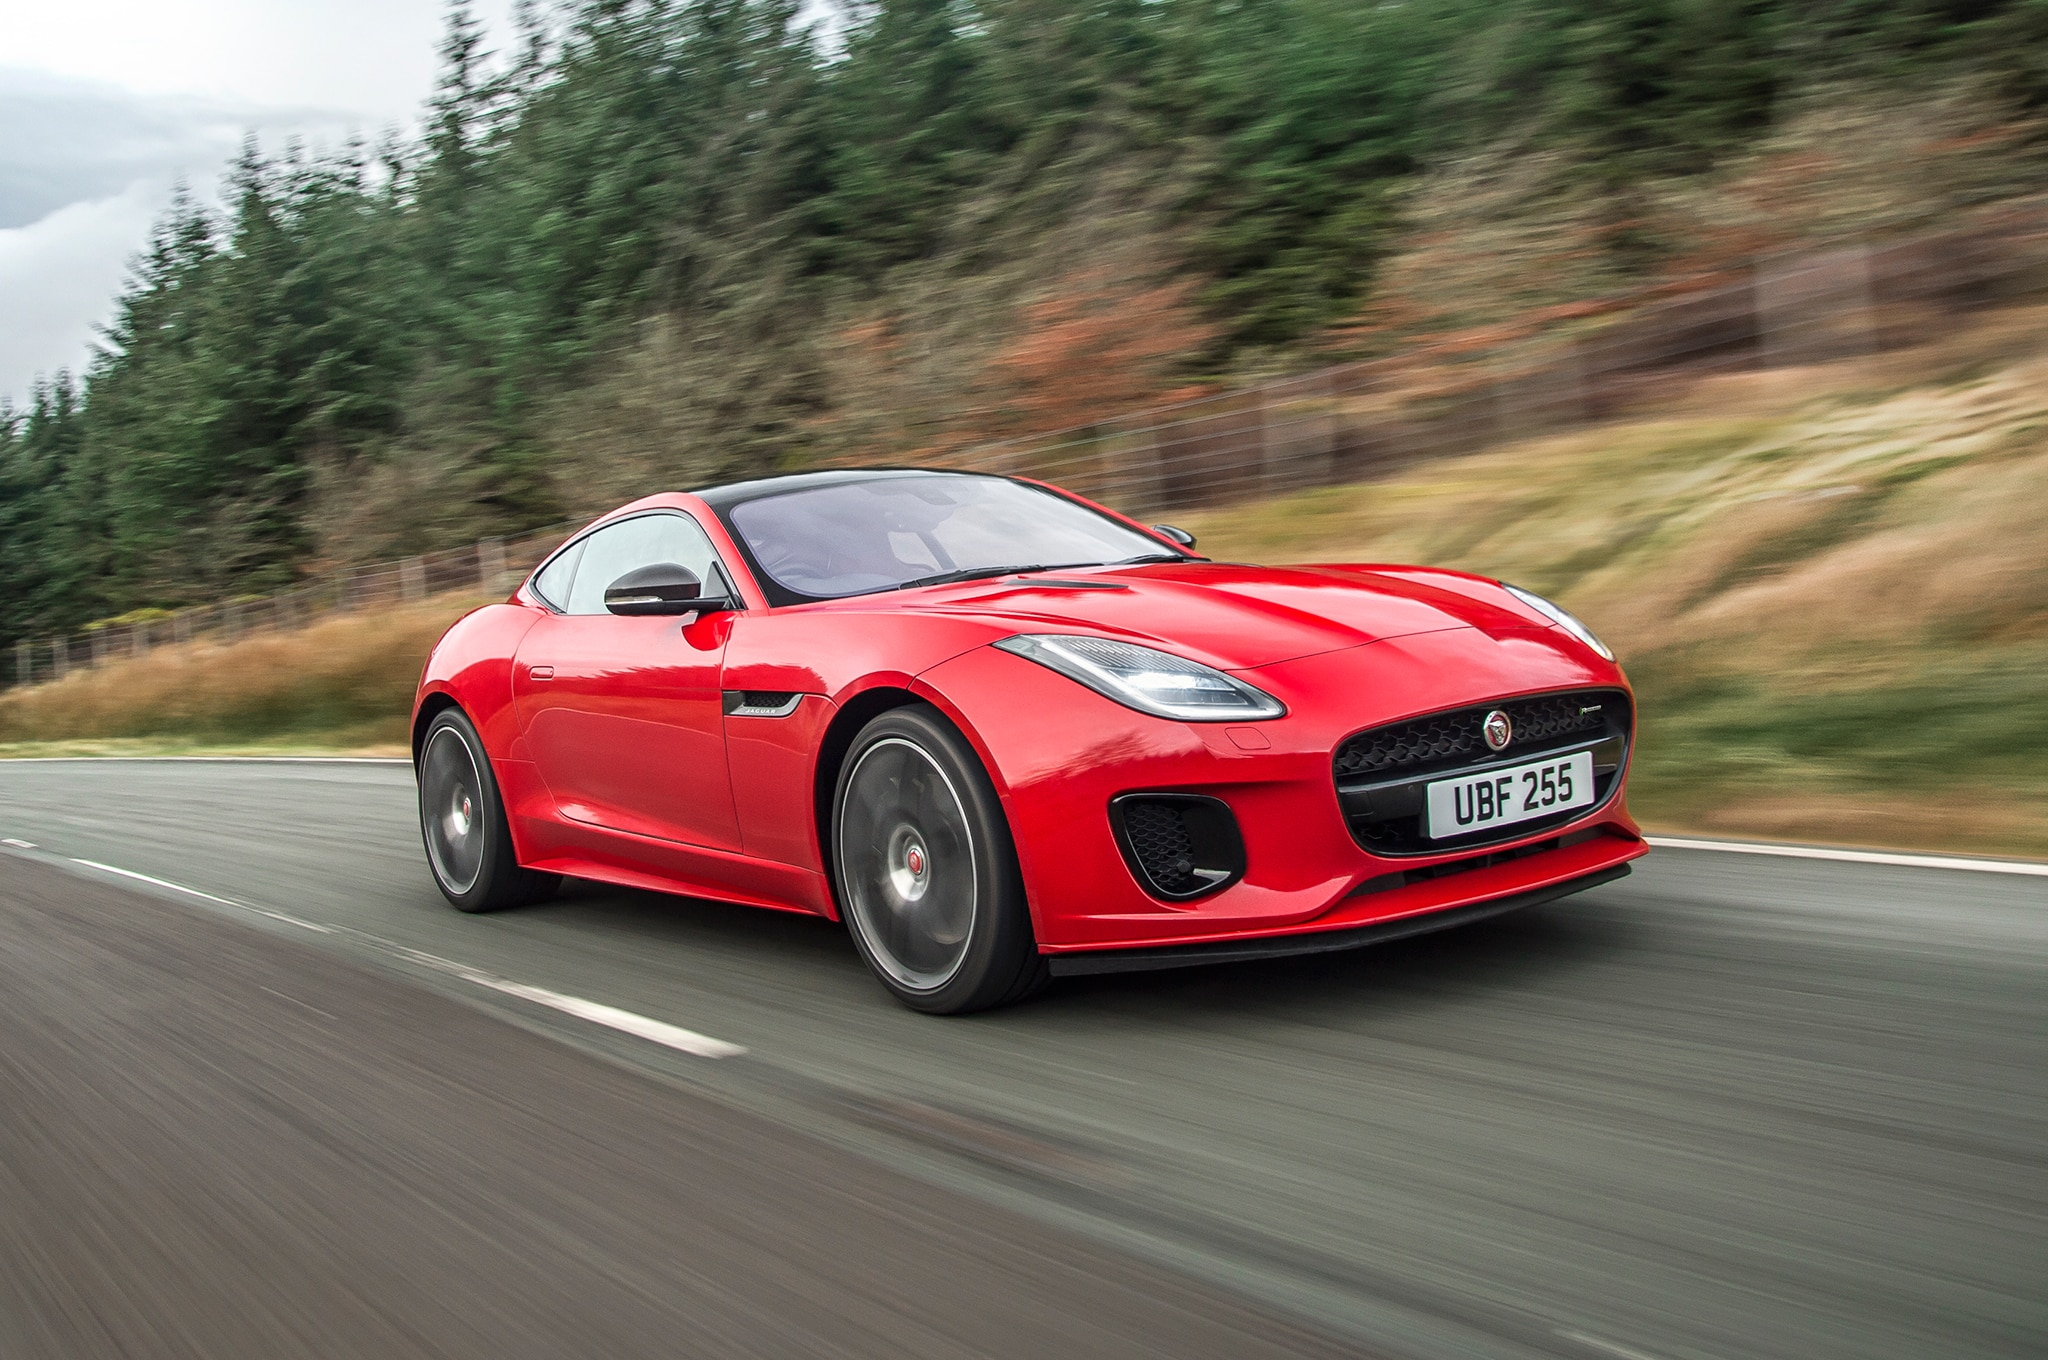 2018 Jaguar F Type Four Cylinder Front Three Quarter In Motion 04 8